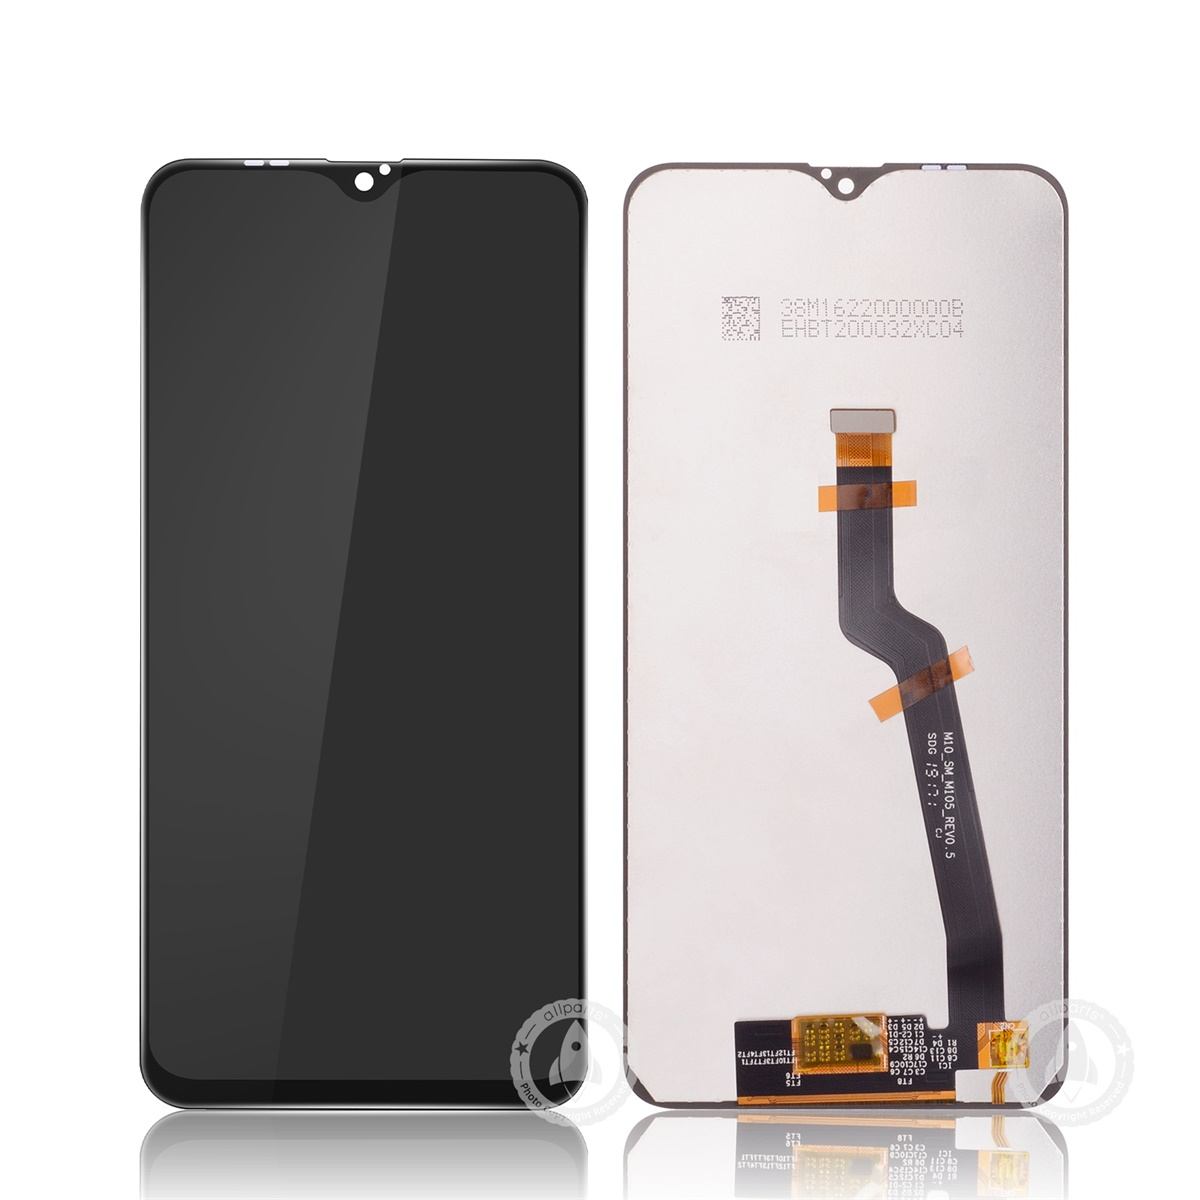 Super AMOMLED Original <font><b>LCD</b></font> For <font><b>Samsung</b></font> A10 A105 <font><b>LCD</b></font> For <font><b>Samsung</b></font> <font><b>M10</b></font> M105F <font><b>LCD</b></font> <font><b>Screen</b></font> Touch Digitizer Assembly image